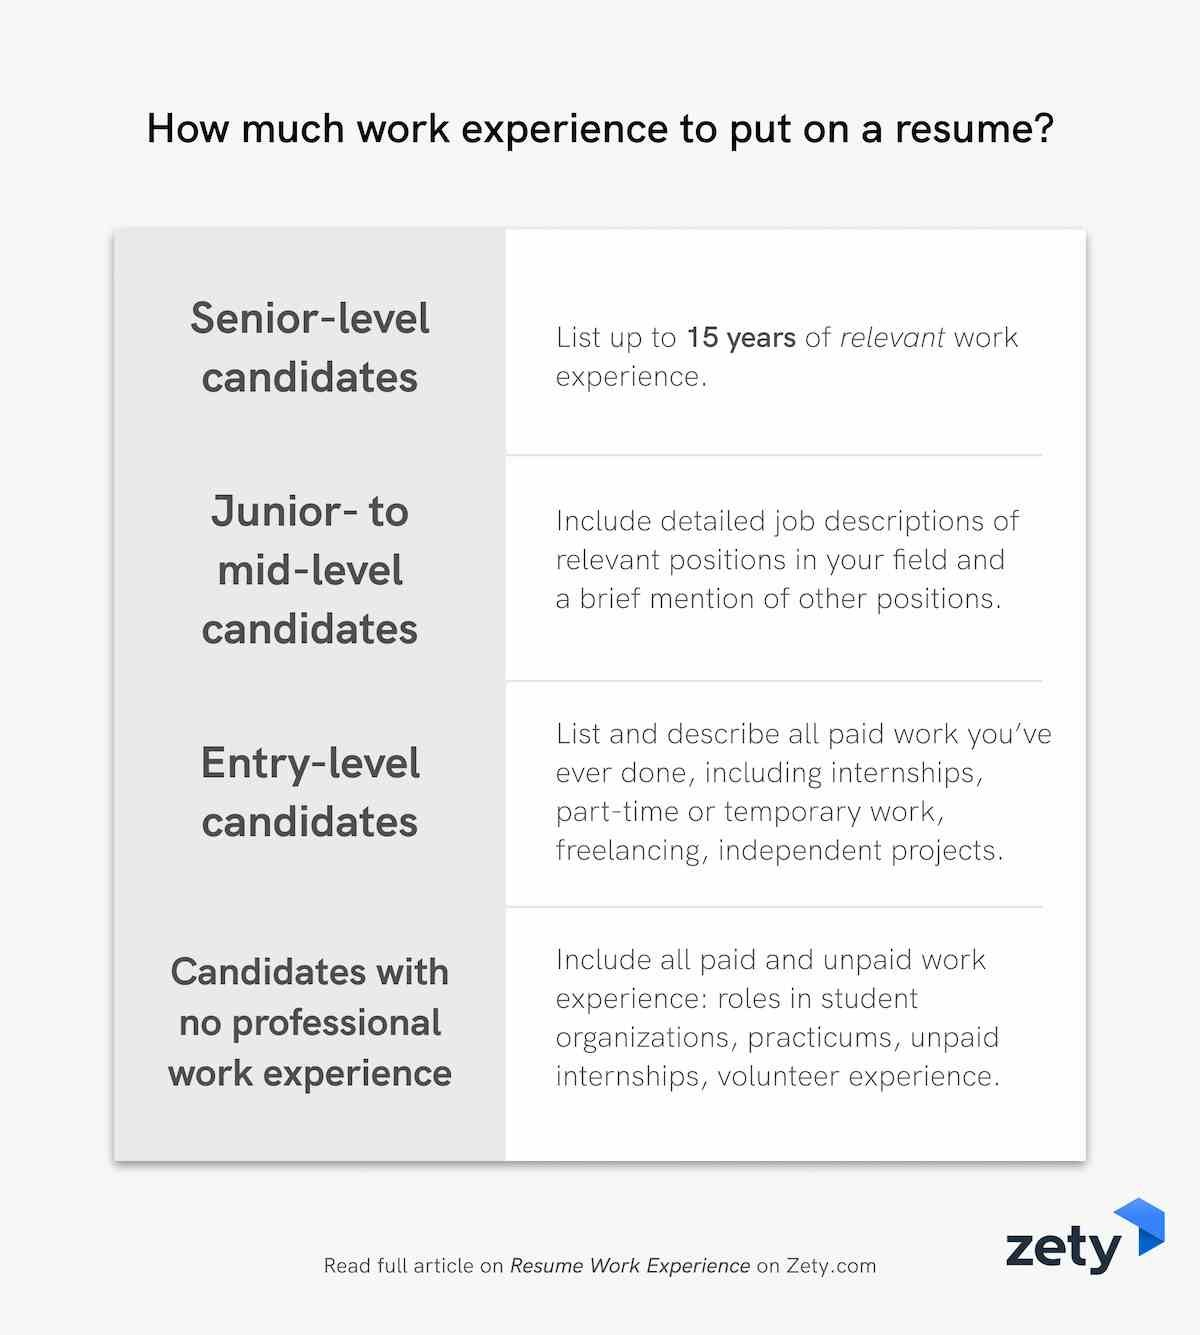 resume work experience history example job descriptions with only one much to put on data Resume Resume With Only One Job History